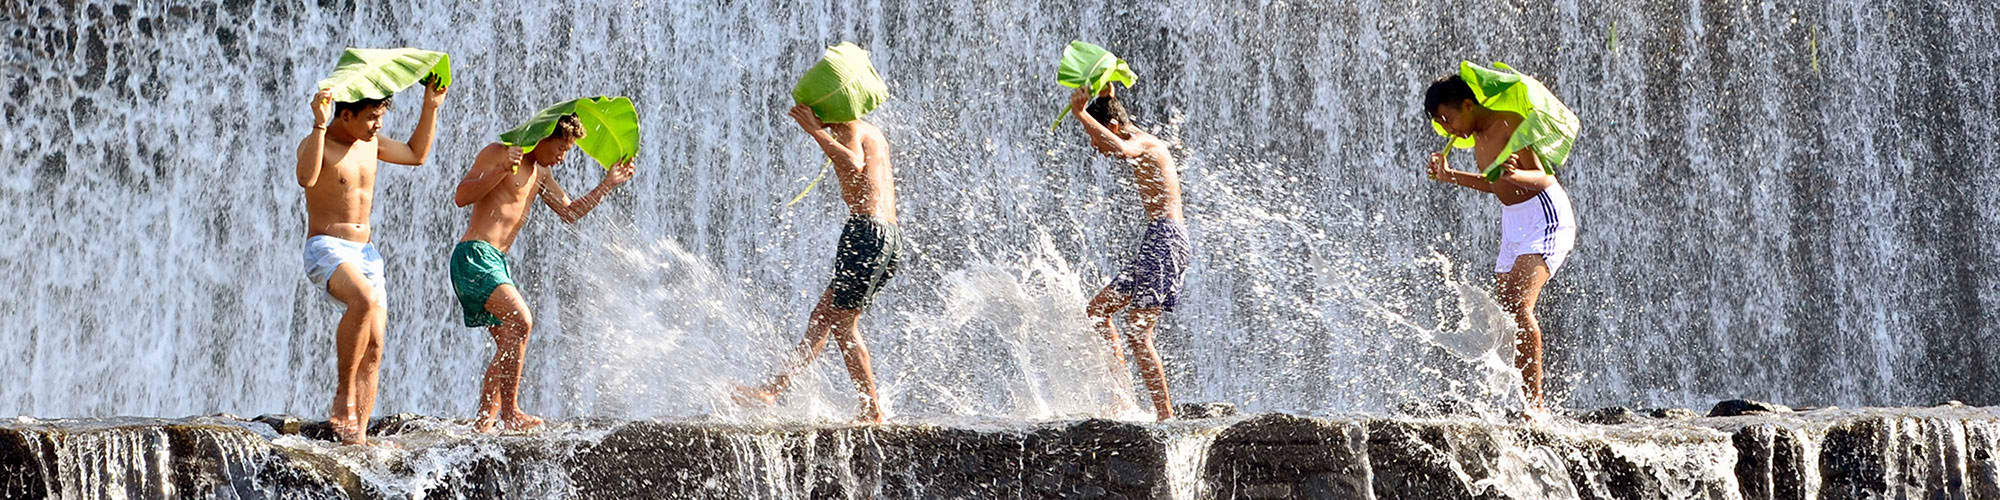 Indonesian Kids Playing Waterfall Large Leaves Head